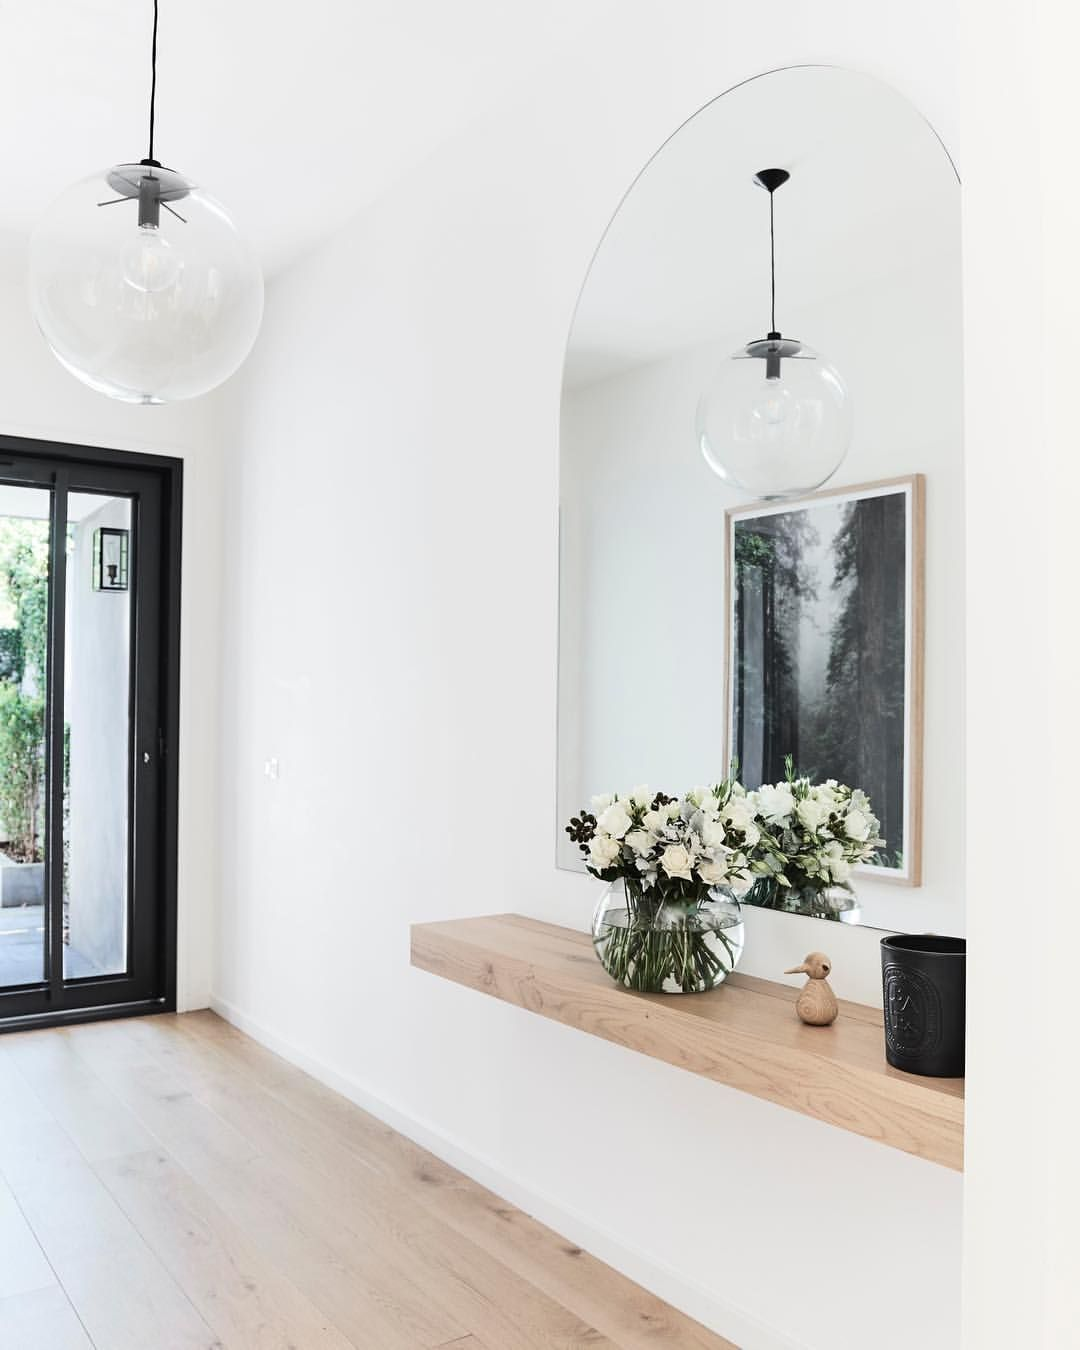 Pejus Kitchen: Pin By Peju Olalere On Home! In 2019